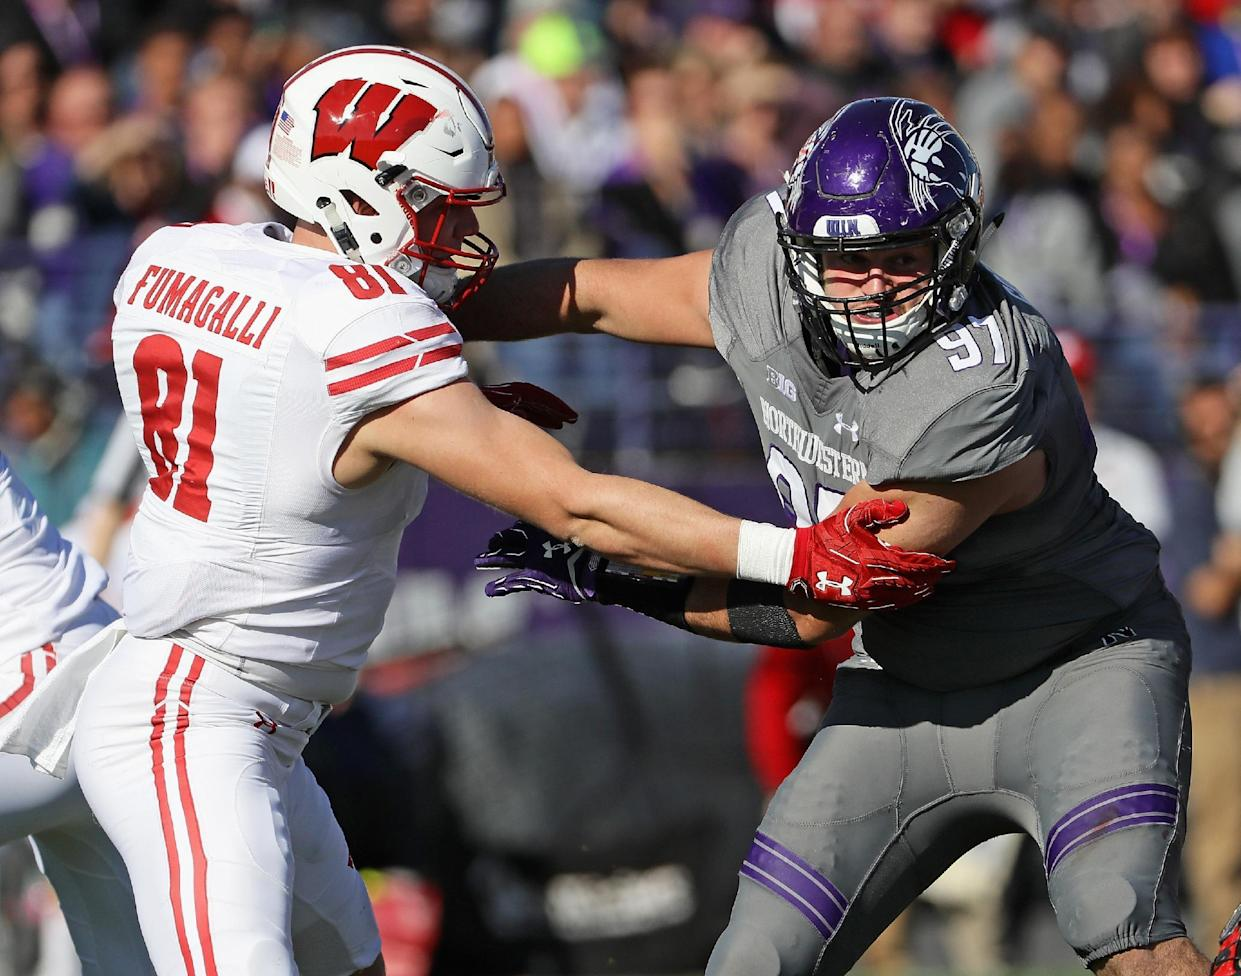 "Northwestern's <a class=""link rapid-noclick-resp"" href=""/ncaaf/players/255324/"" data-ylk=""slk:Joe Gaziano"">Joe Gaziano</a> rushes against Wisconsin's <a class=""link rapid-noclick-resp"" href=""/nfl/players/31126/"" data-ylk=""slk:Troy Fumagalli"">Troy Fumagalli</a> on Nov. 5, 2016 in Evanston, Illinois. (Getty)"